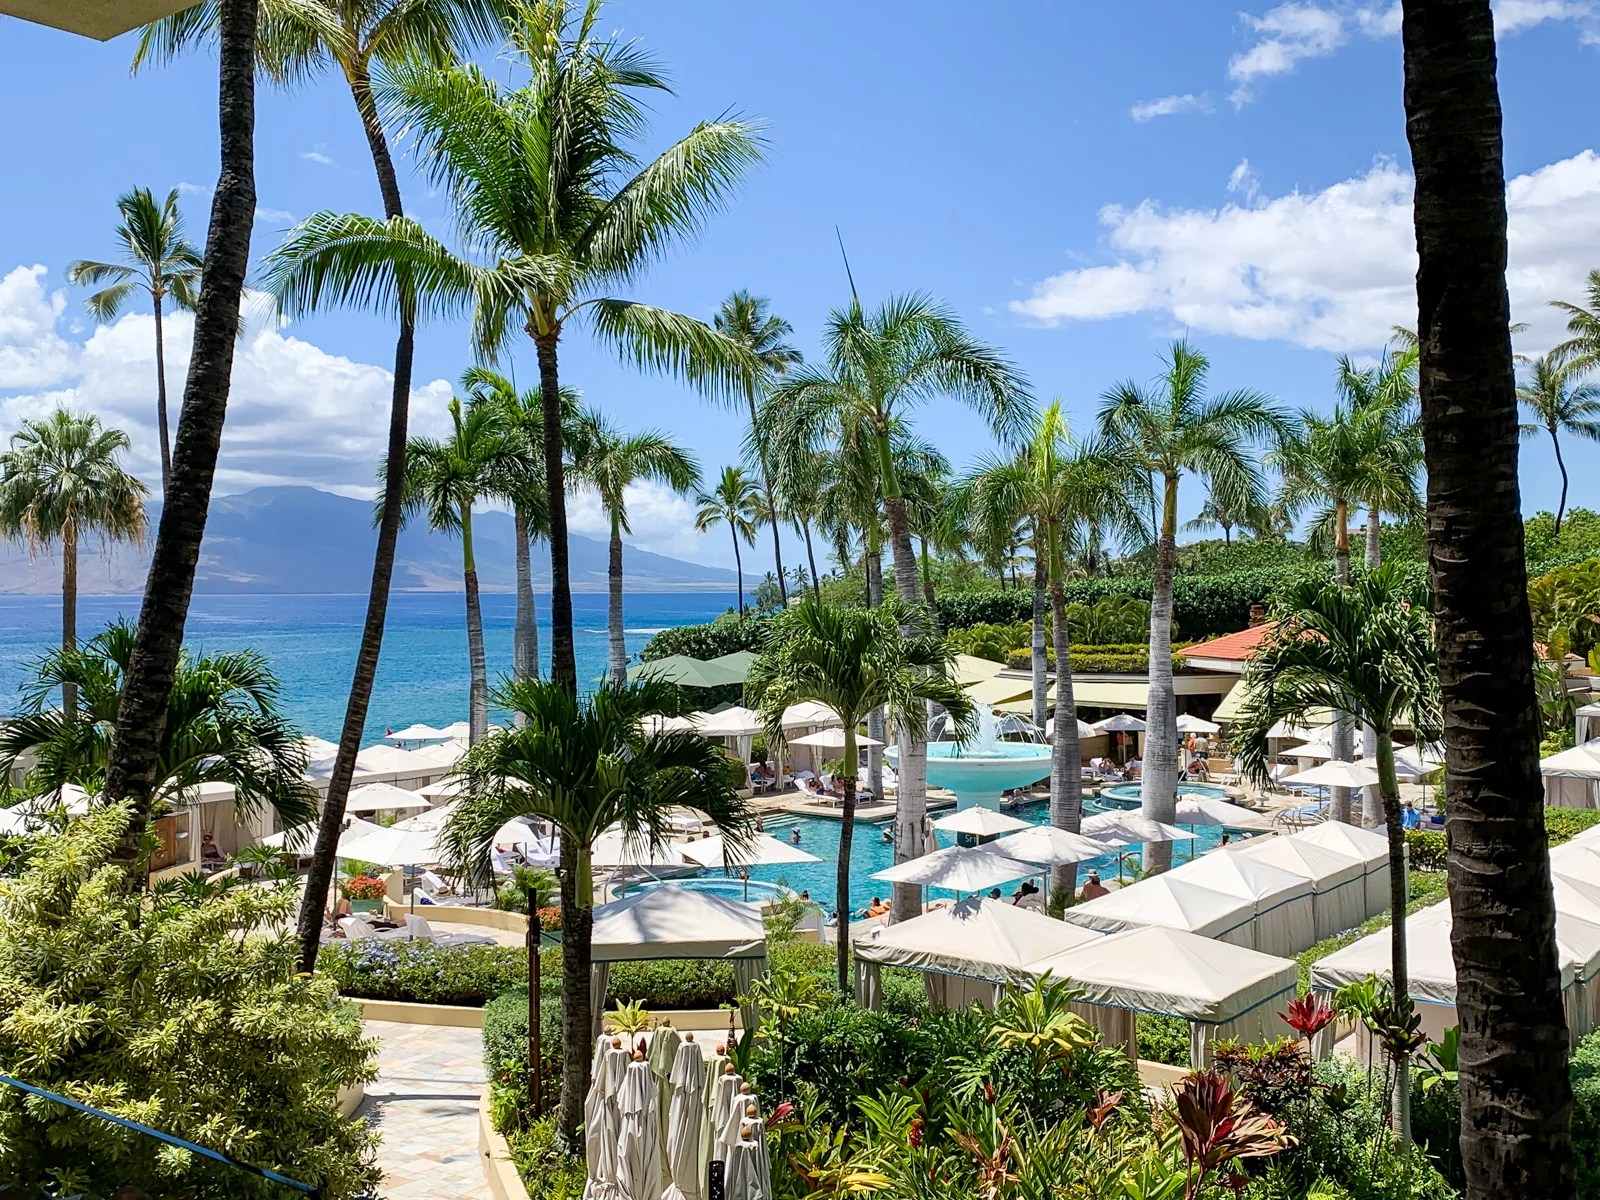 Luxury in Wailea: A Review of the Four Seasons Resort Maui